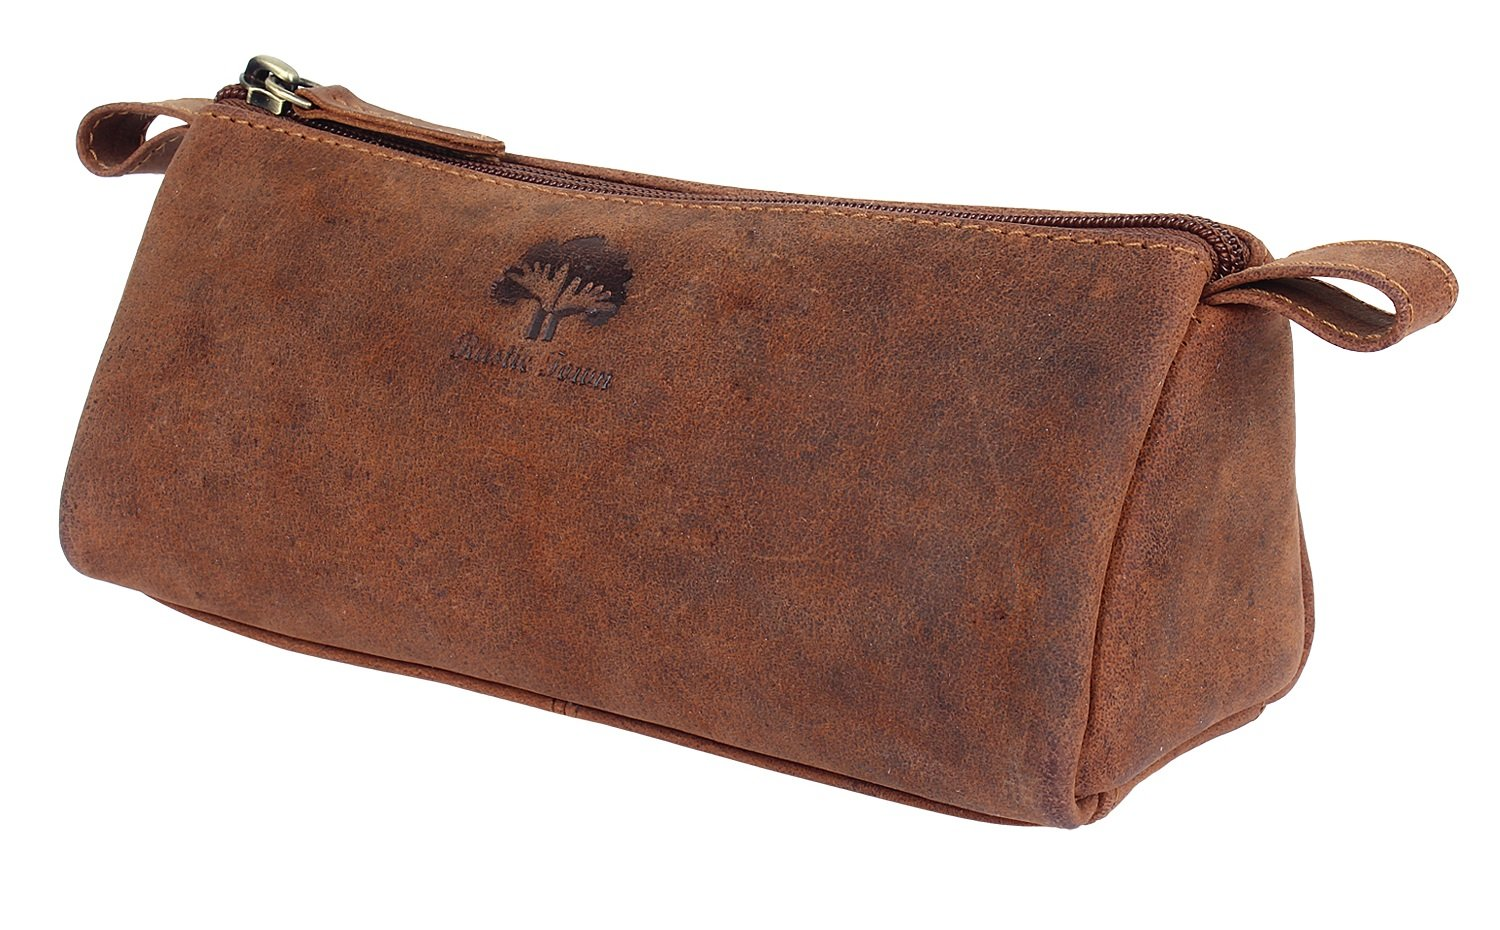 Leather Pencil Case - Zippered Pen Pouch for School, Work & Office by Rustic Town